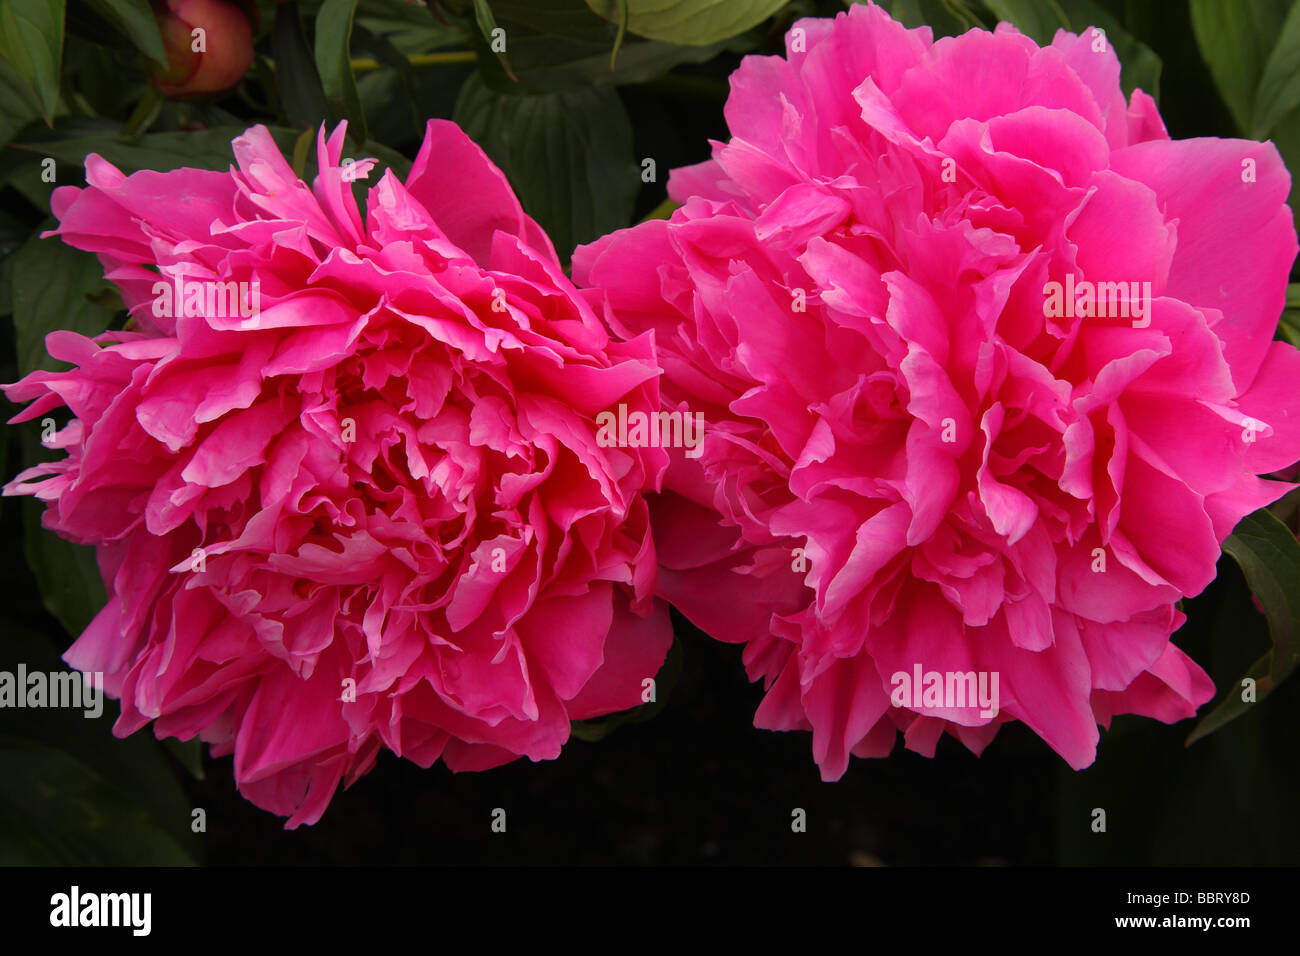 Two pink peonies flowers close up peonia stock photo royalty free stock photo two pink peonies flowers close up peonia dhlflorist Images